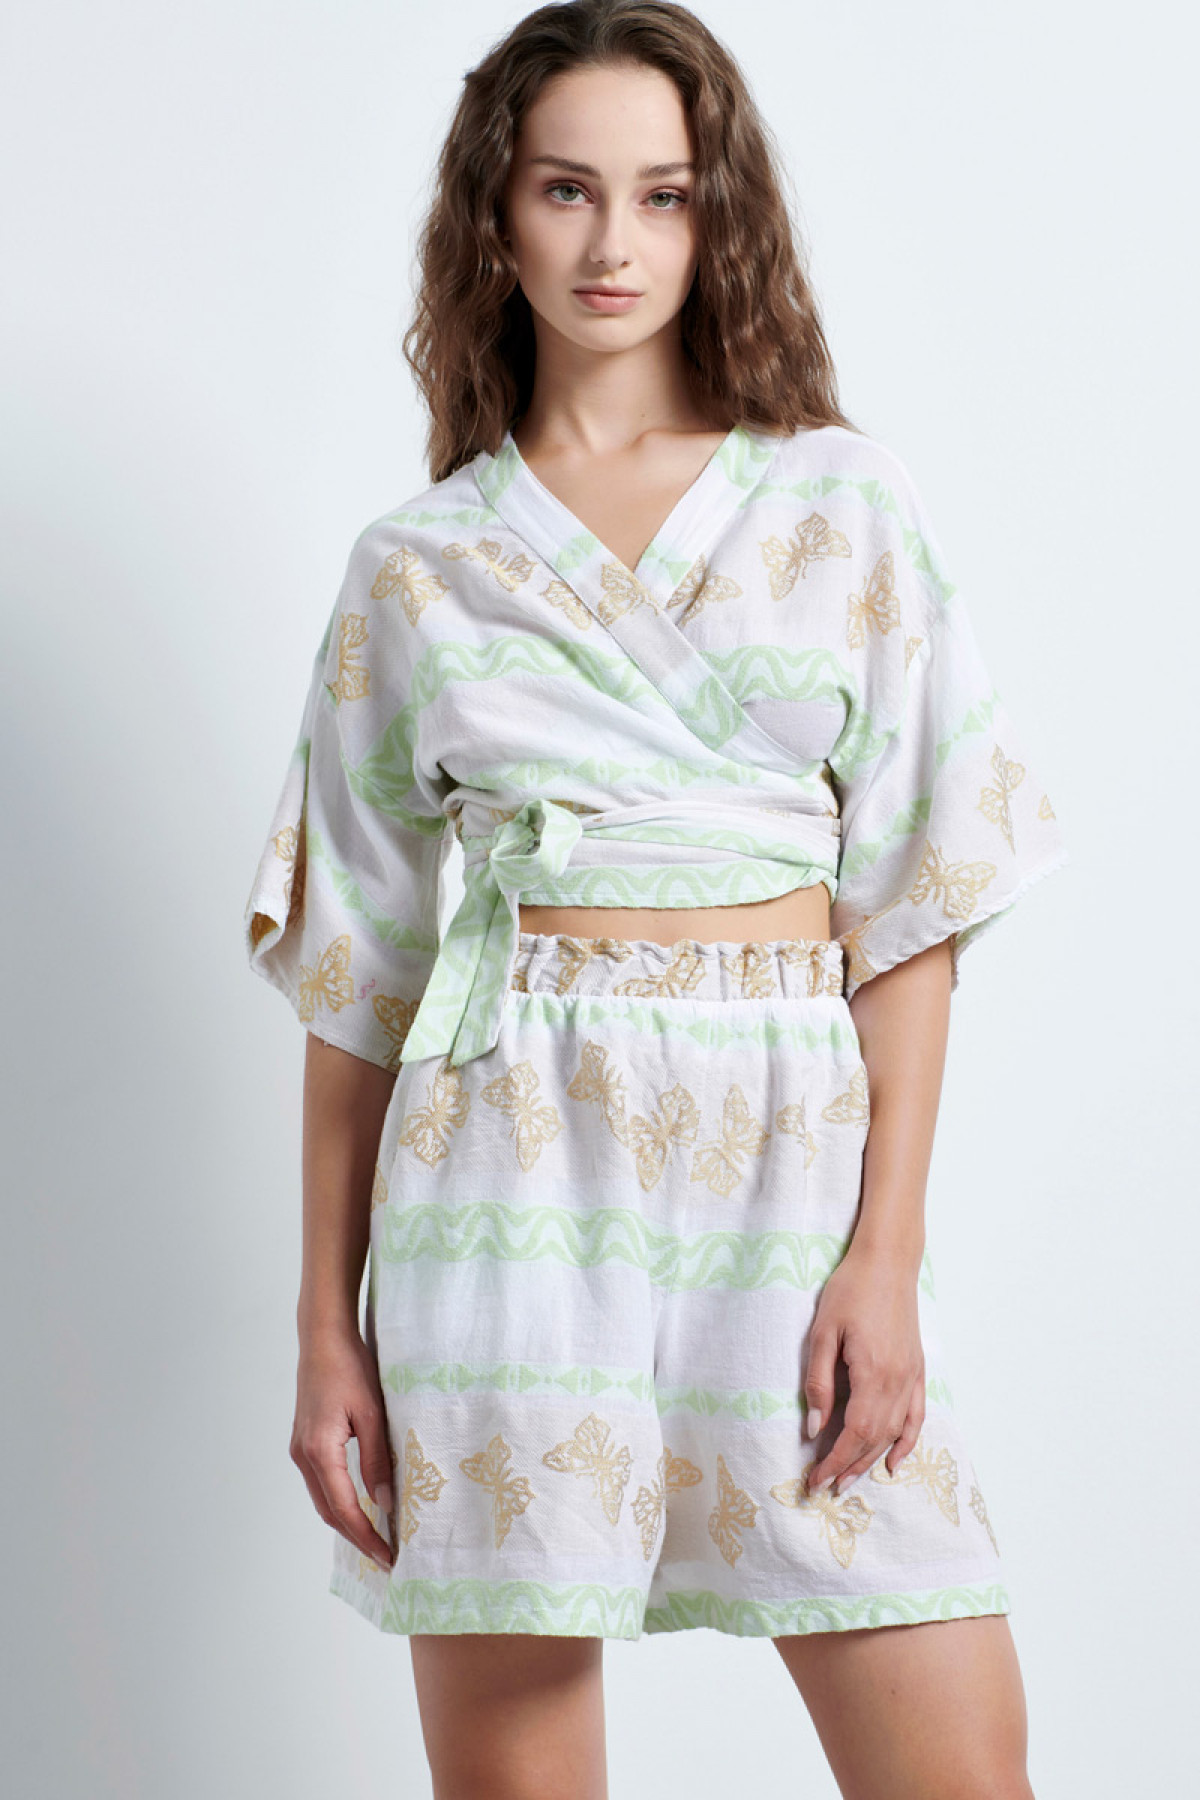 SELF-TIE JACQUARD CROP TOP WITH GREEN NEON DETAILING